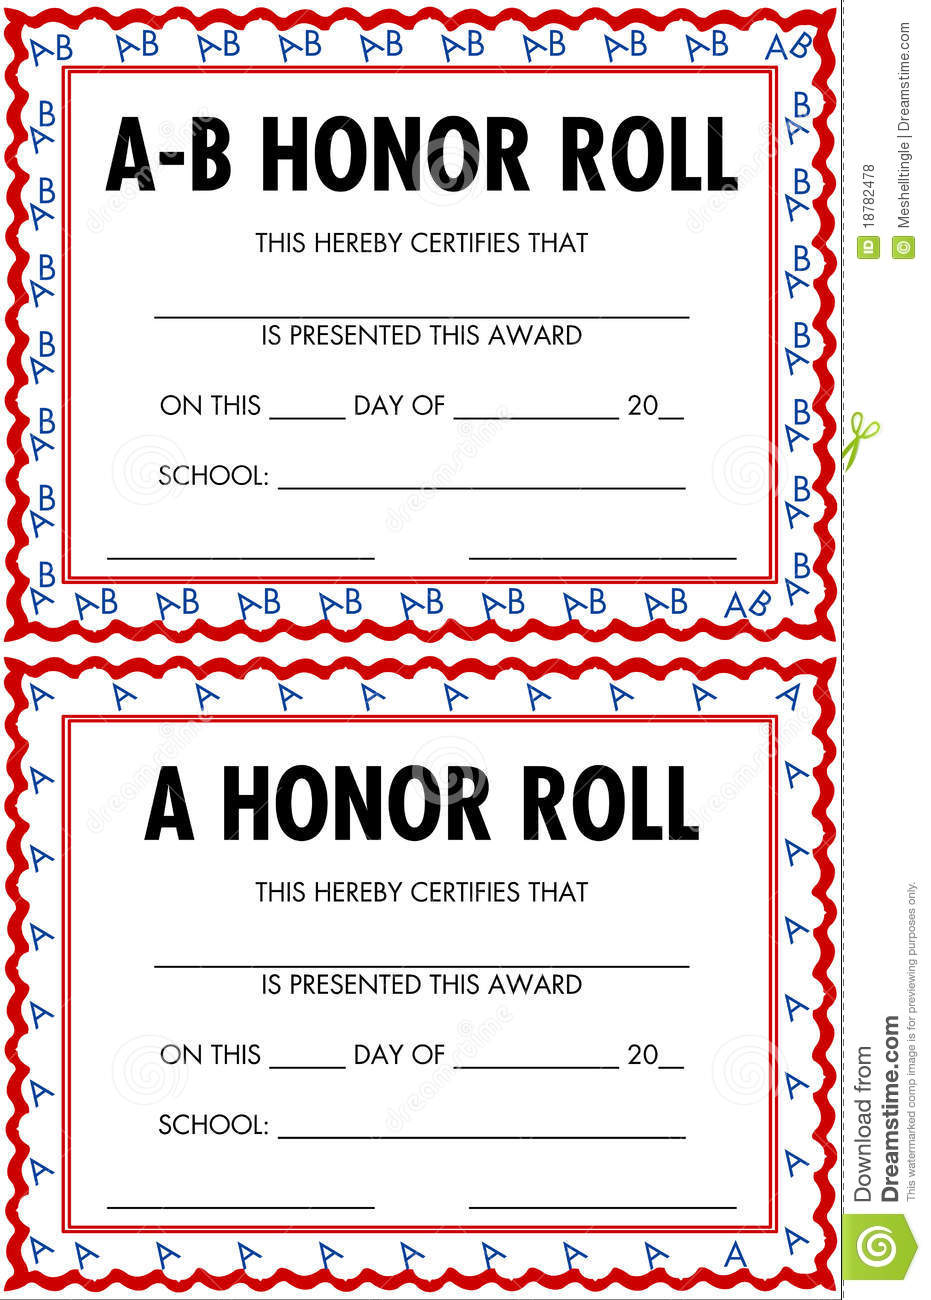 Honor Roll Certificates Royalty Free Stock Photos - Image ...